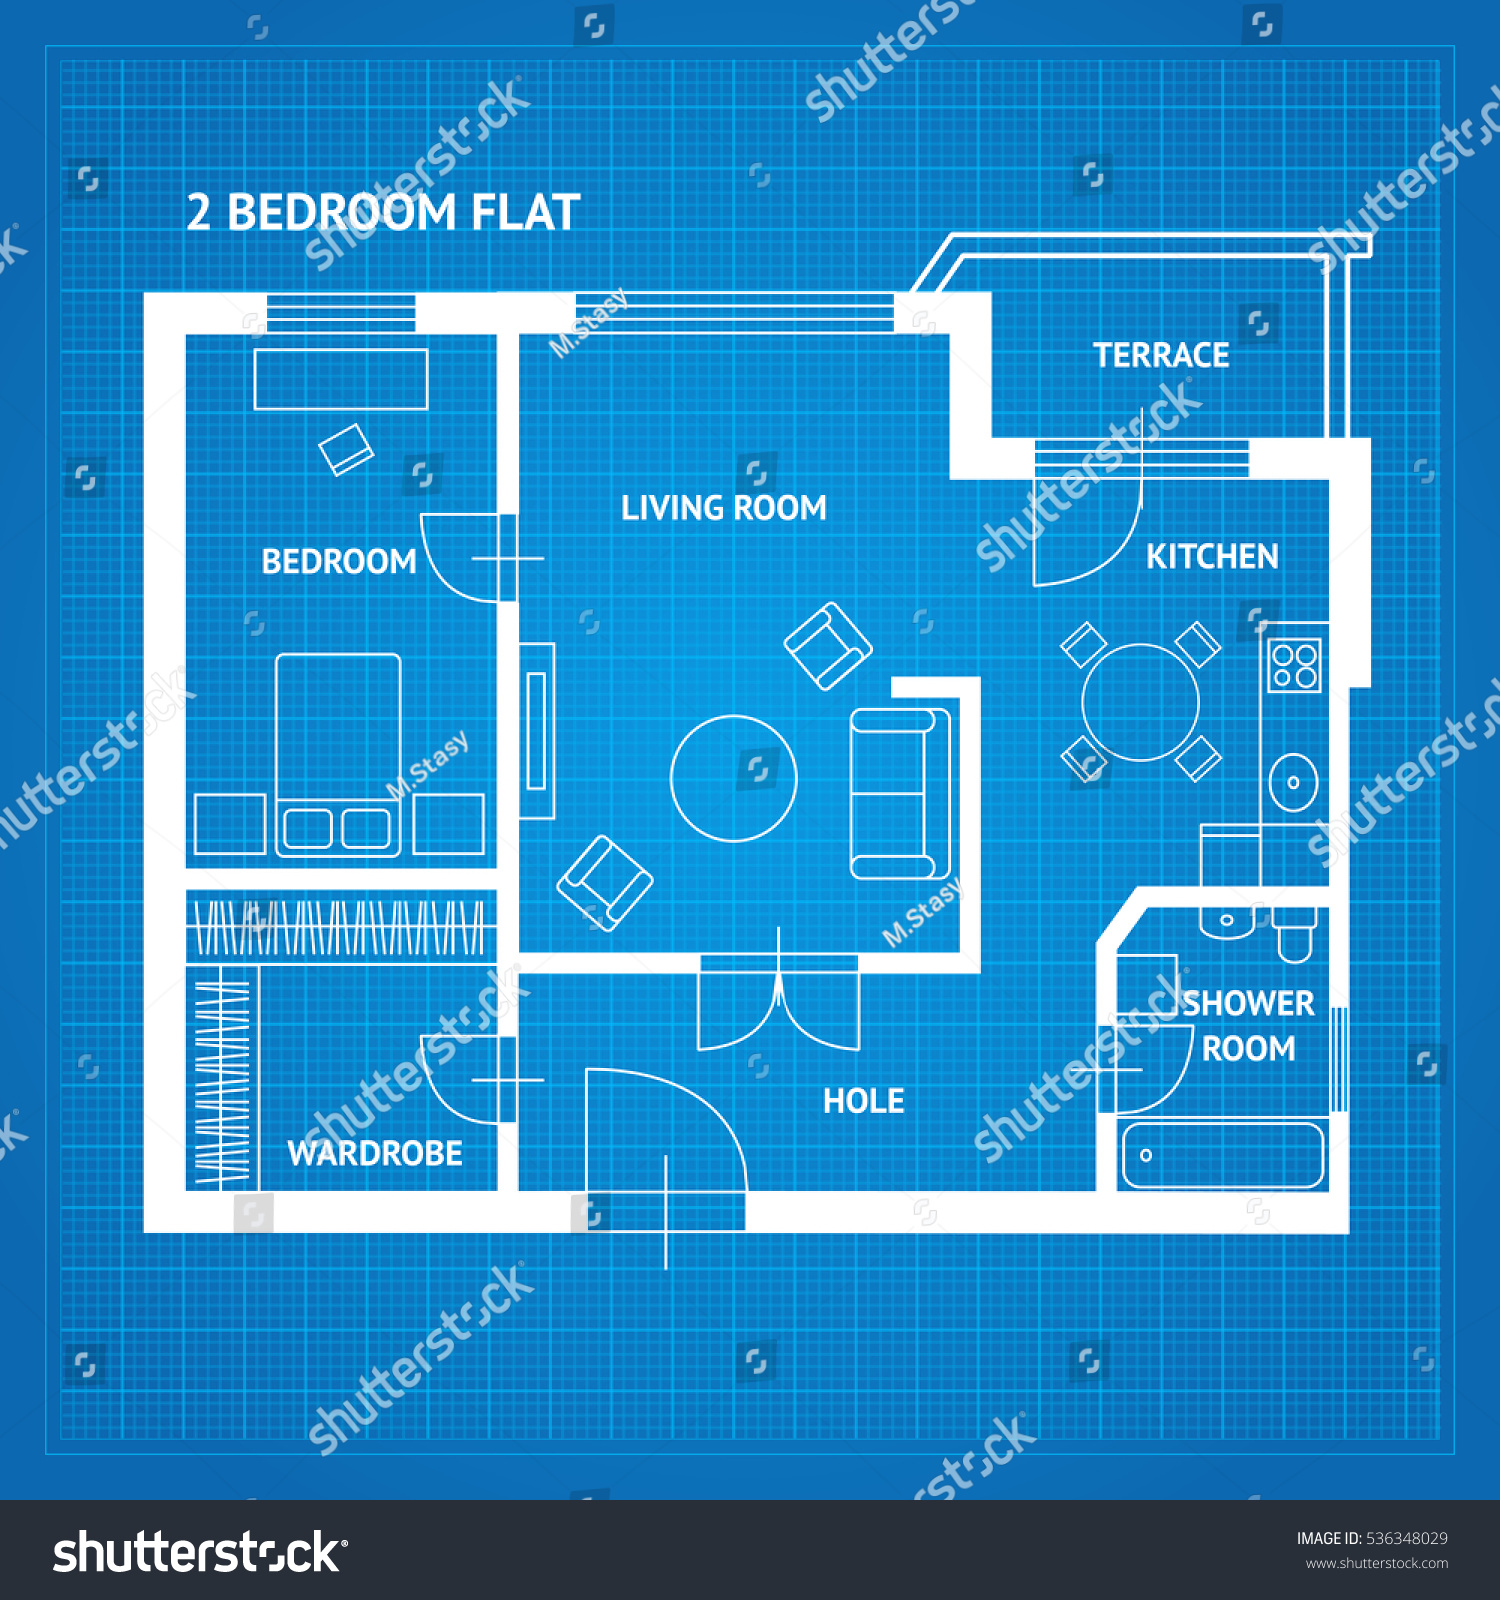 Apartment floor plan blueprint furniture top stock vector 536348029 apartment floor plan blueprint with furniture top view vector illustration malvernweather Choice Image